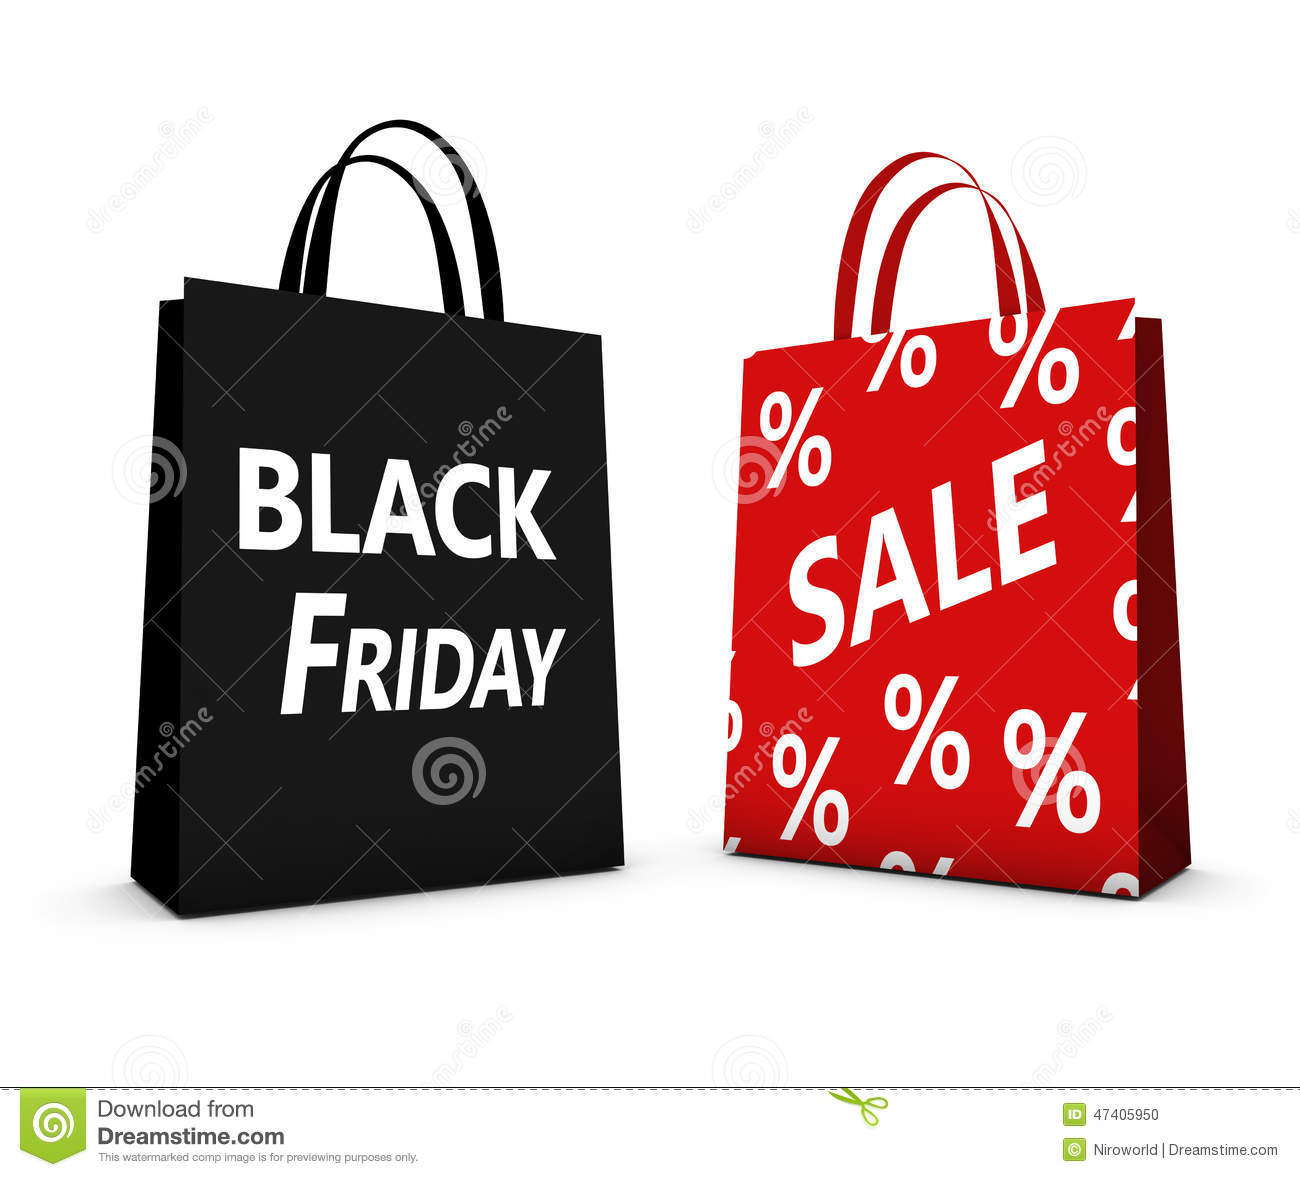 Black Friday deals are done for this year, but check back in for our Black Friday Sale. You'll save on home, furniture, electrics, clothing, shoes, dresses, jewelry and handbags on sale.